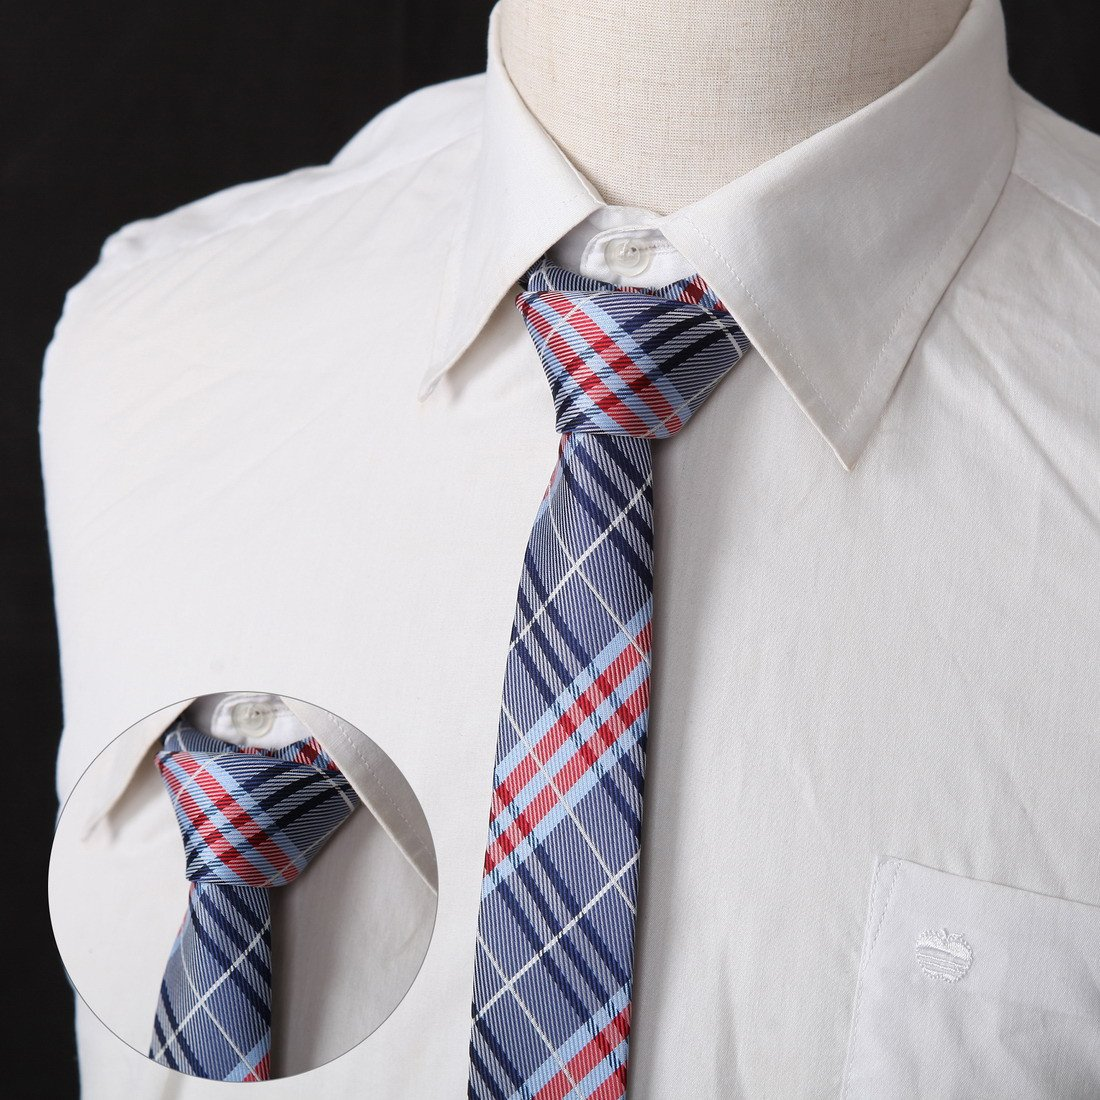 DANF0039 Series Colors 5cm-width Polyester Slim Ties Creative Fashion Skinny Ties - 5 Styles Available Inspire For Business By Dan Smith by Dan Smith (Image #3)